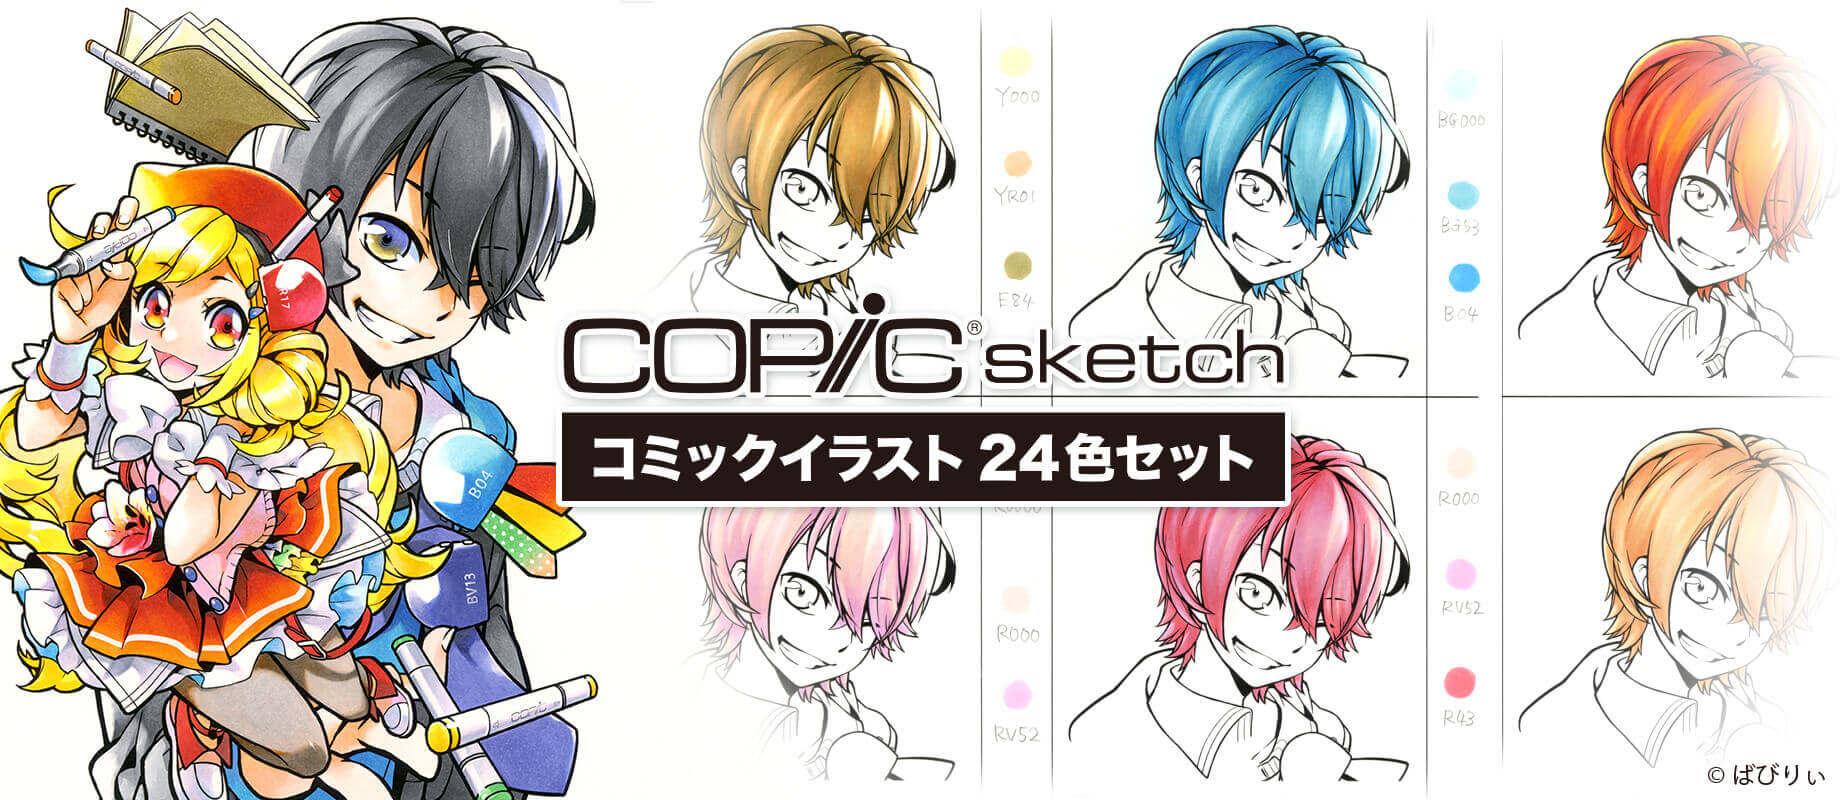 Copic Sketch - COPIC Official Site (English)